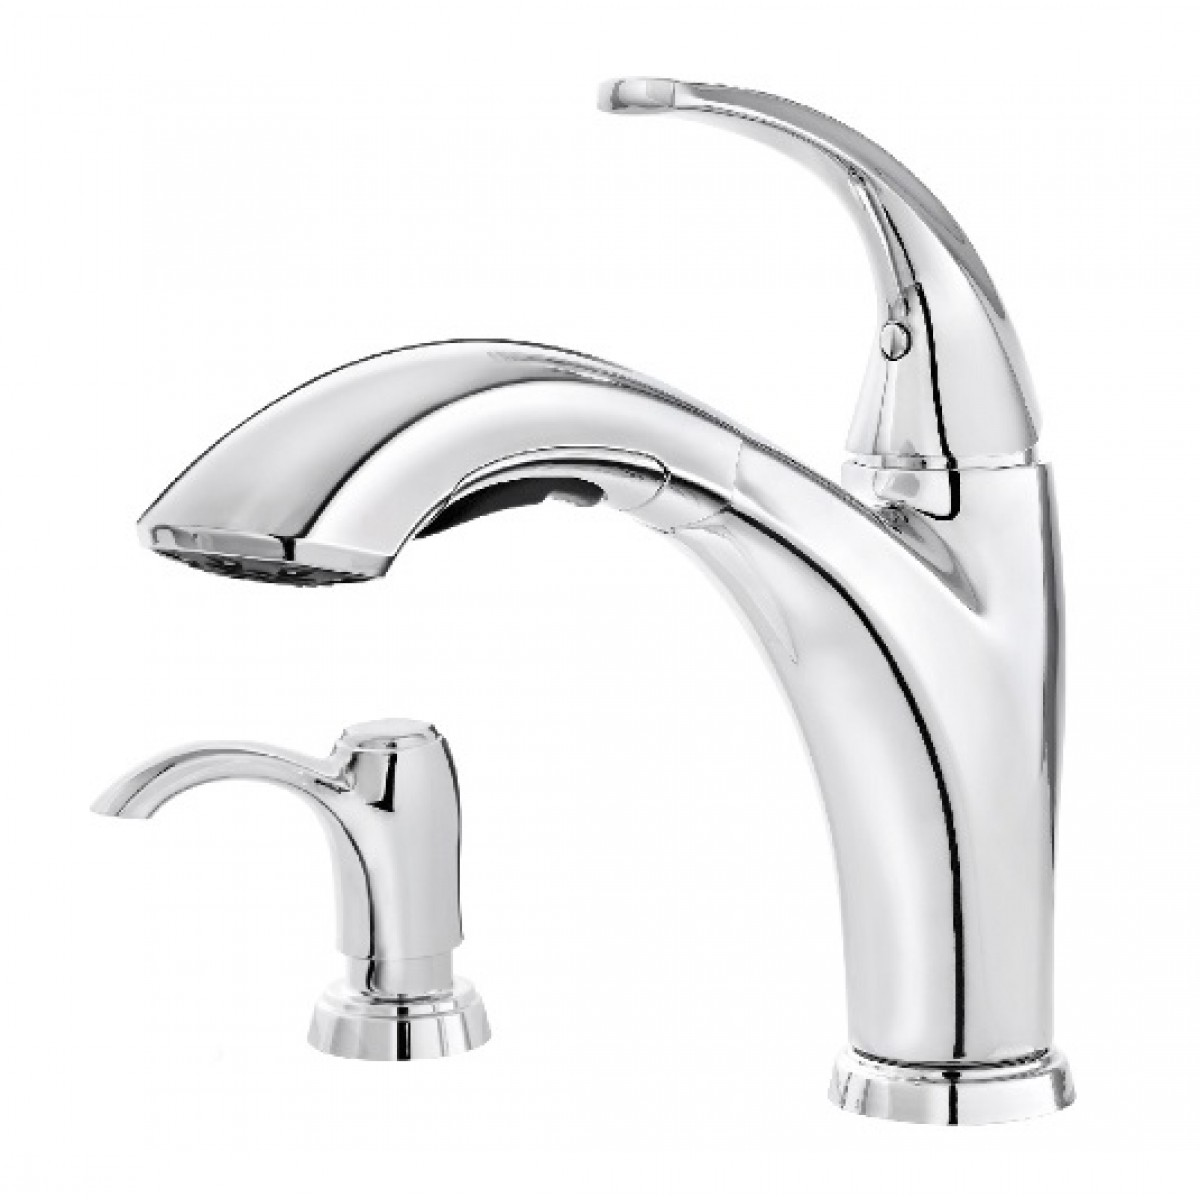 Pfister Selia Lead Free Single Handle Pull Out Chrome Kitchen Faucet With  Soap Dispenser. Pfister Selia Lead Free Single Handle Pull Out Chrome Kitchen